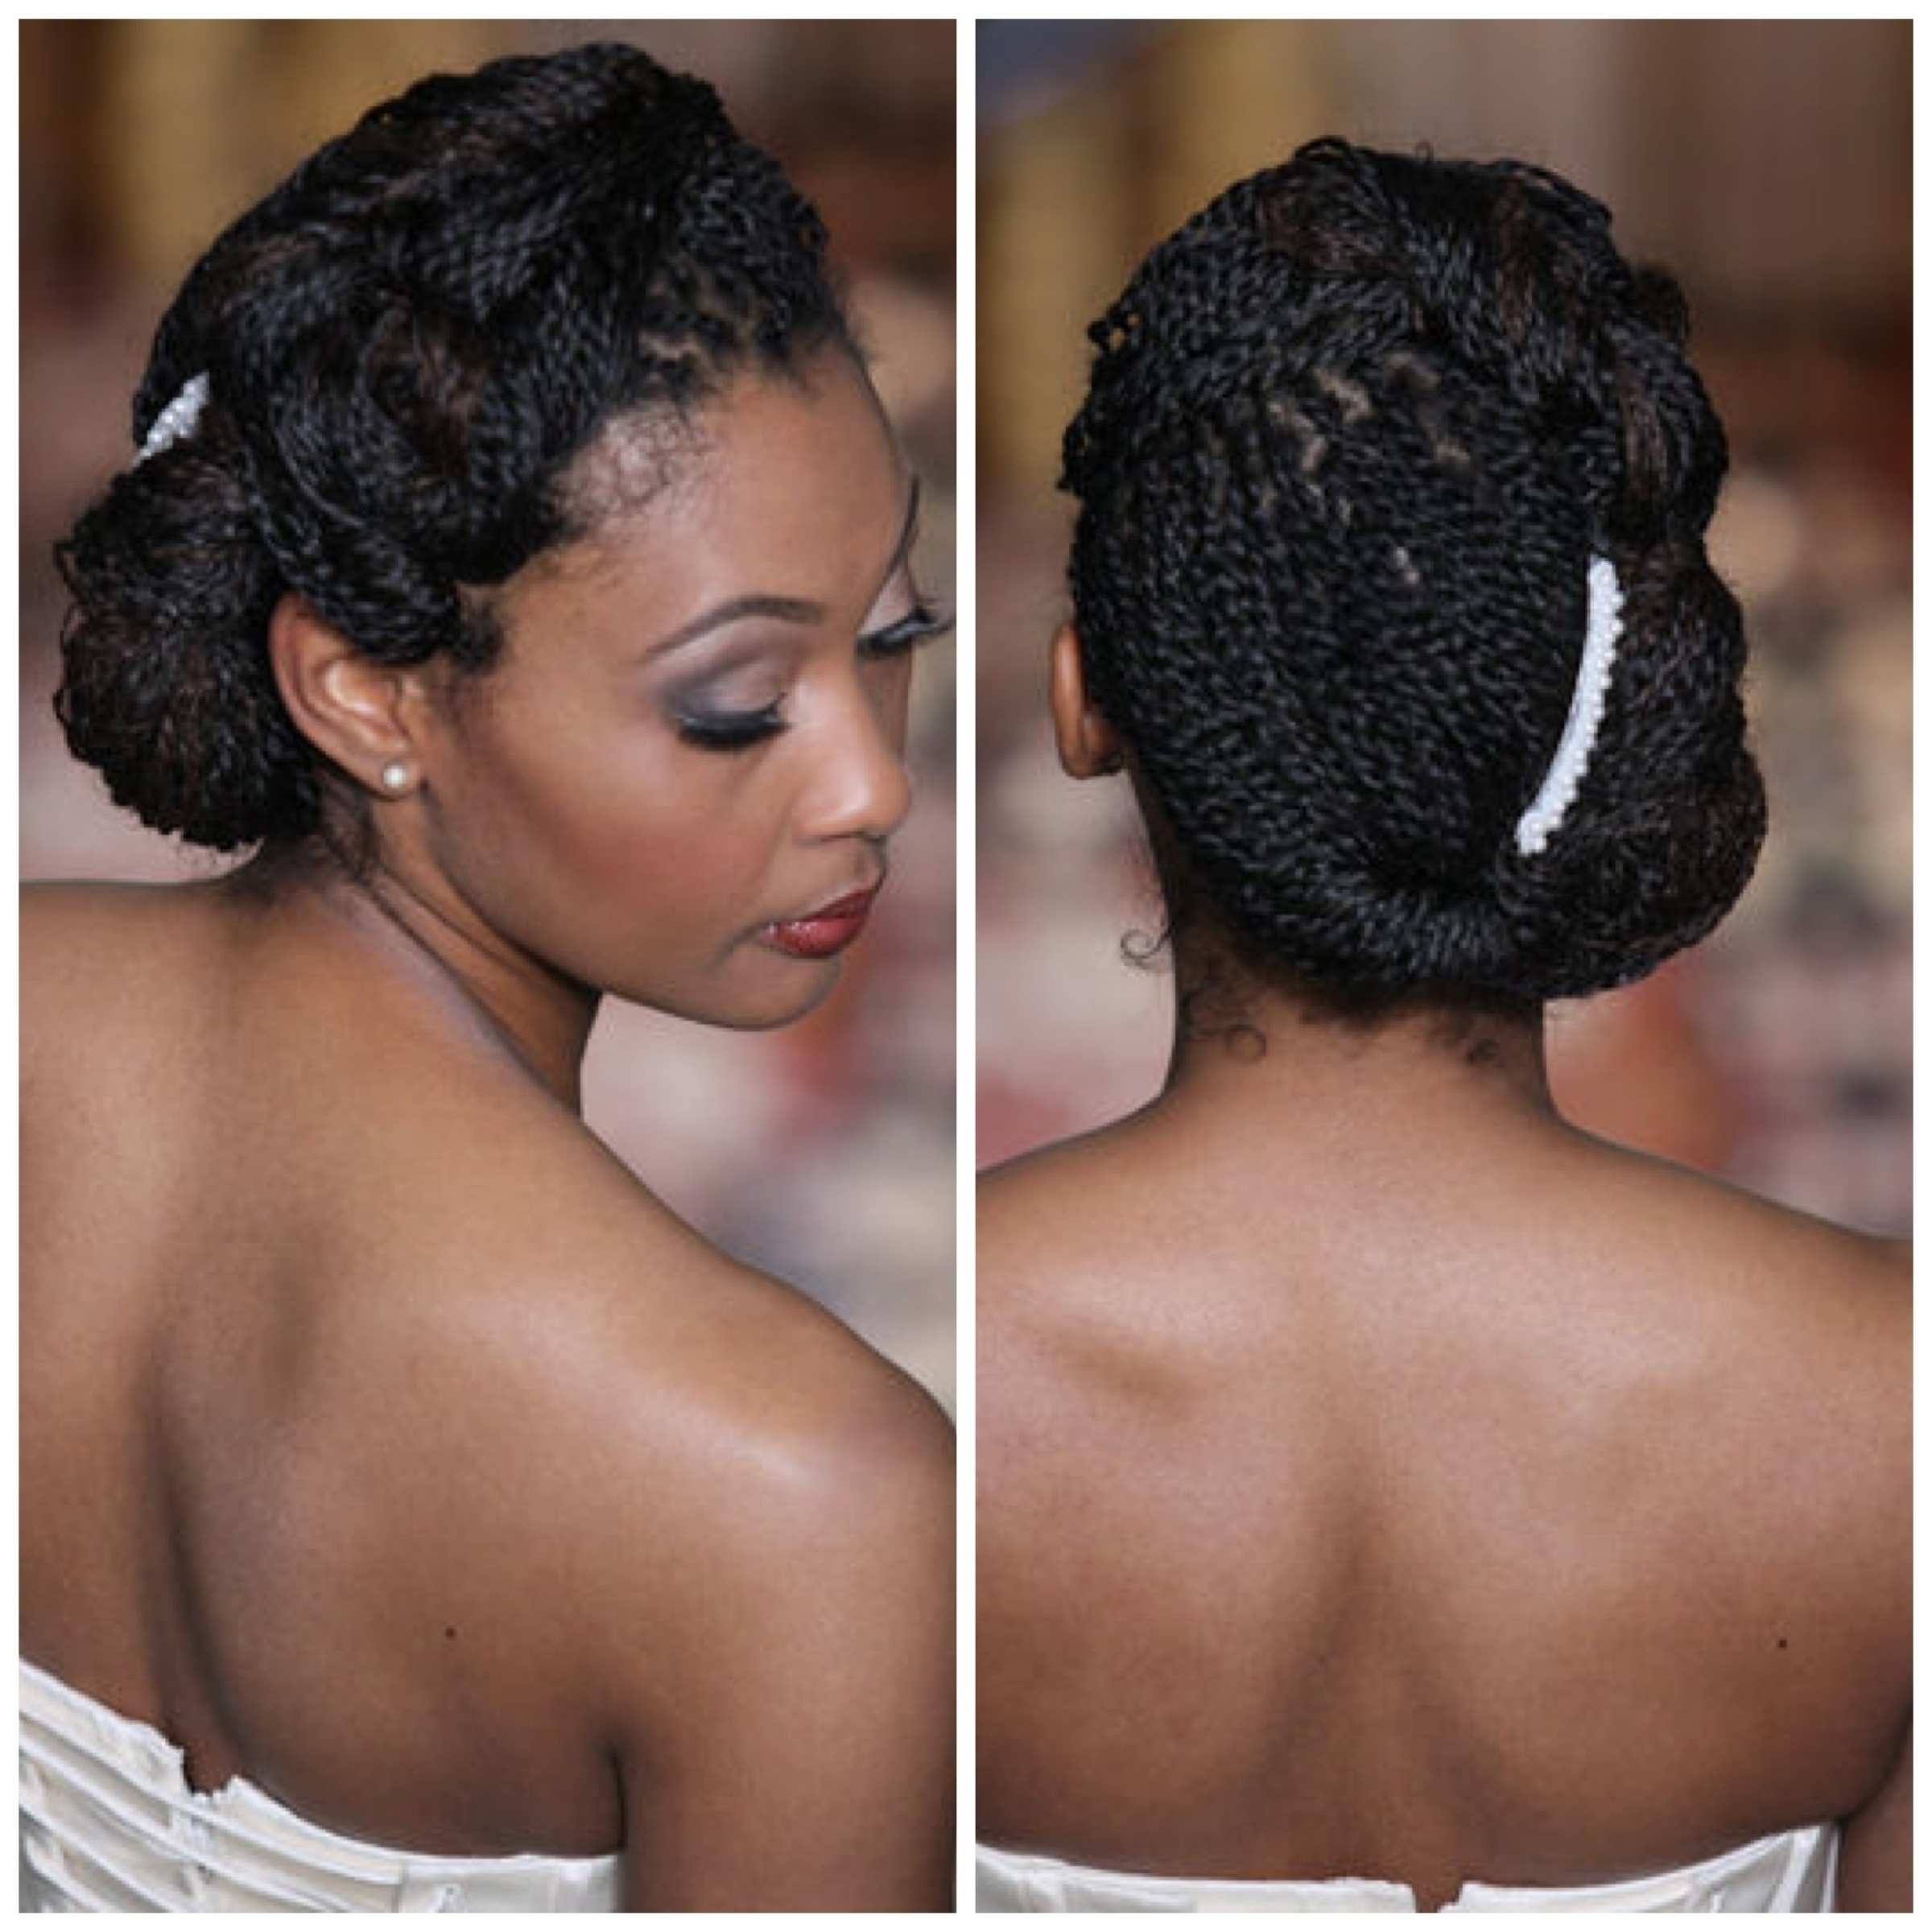 Pleasing Black Braids Updo Hairstyles Also Updo Black Braided Pertaining To Black Braids Updo Hairstyles (View 11 of 15)